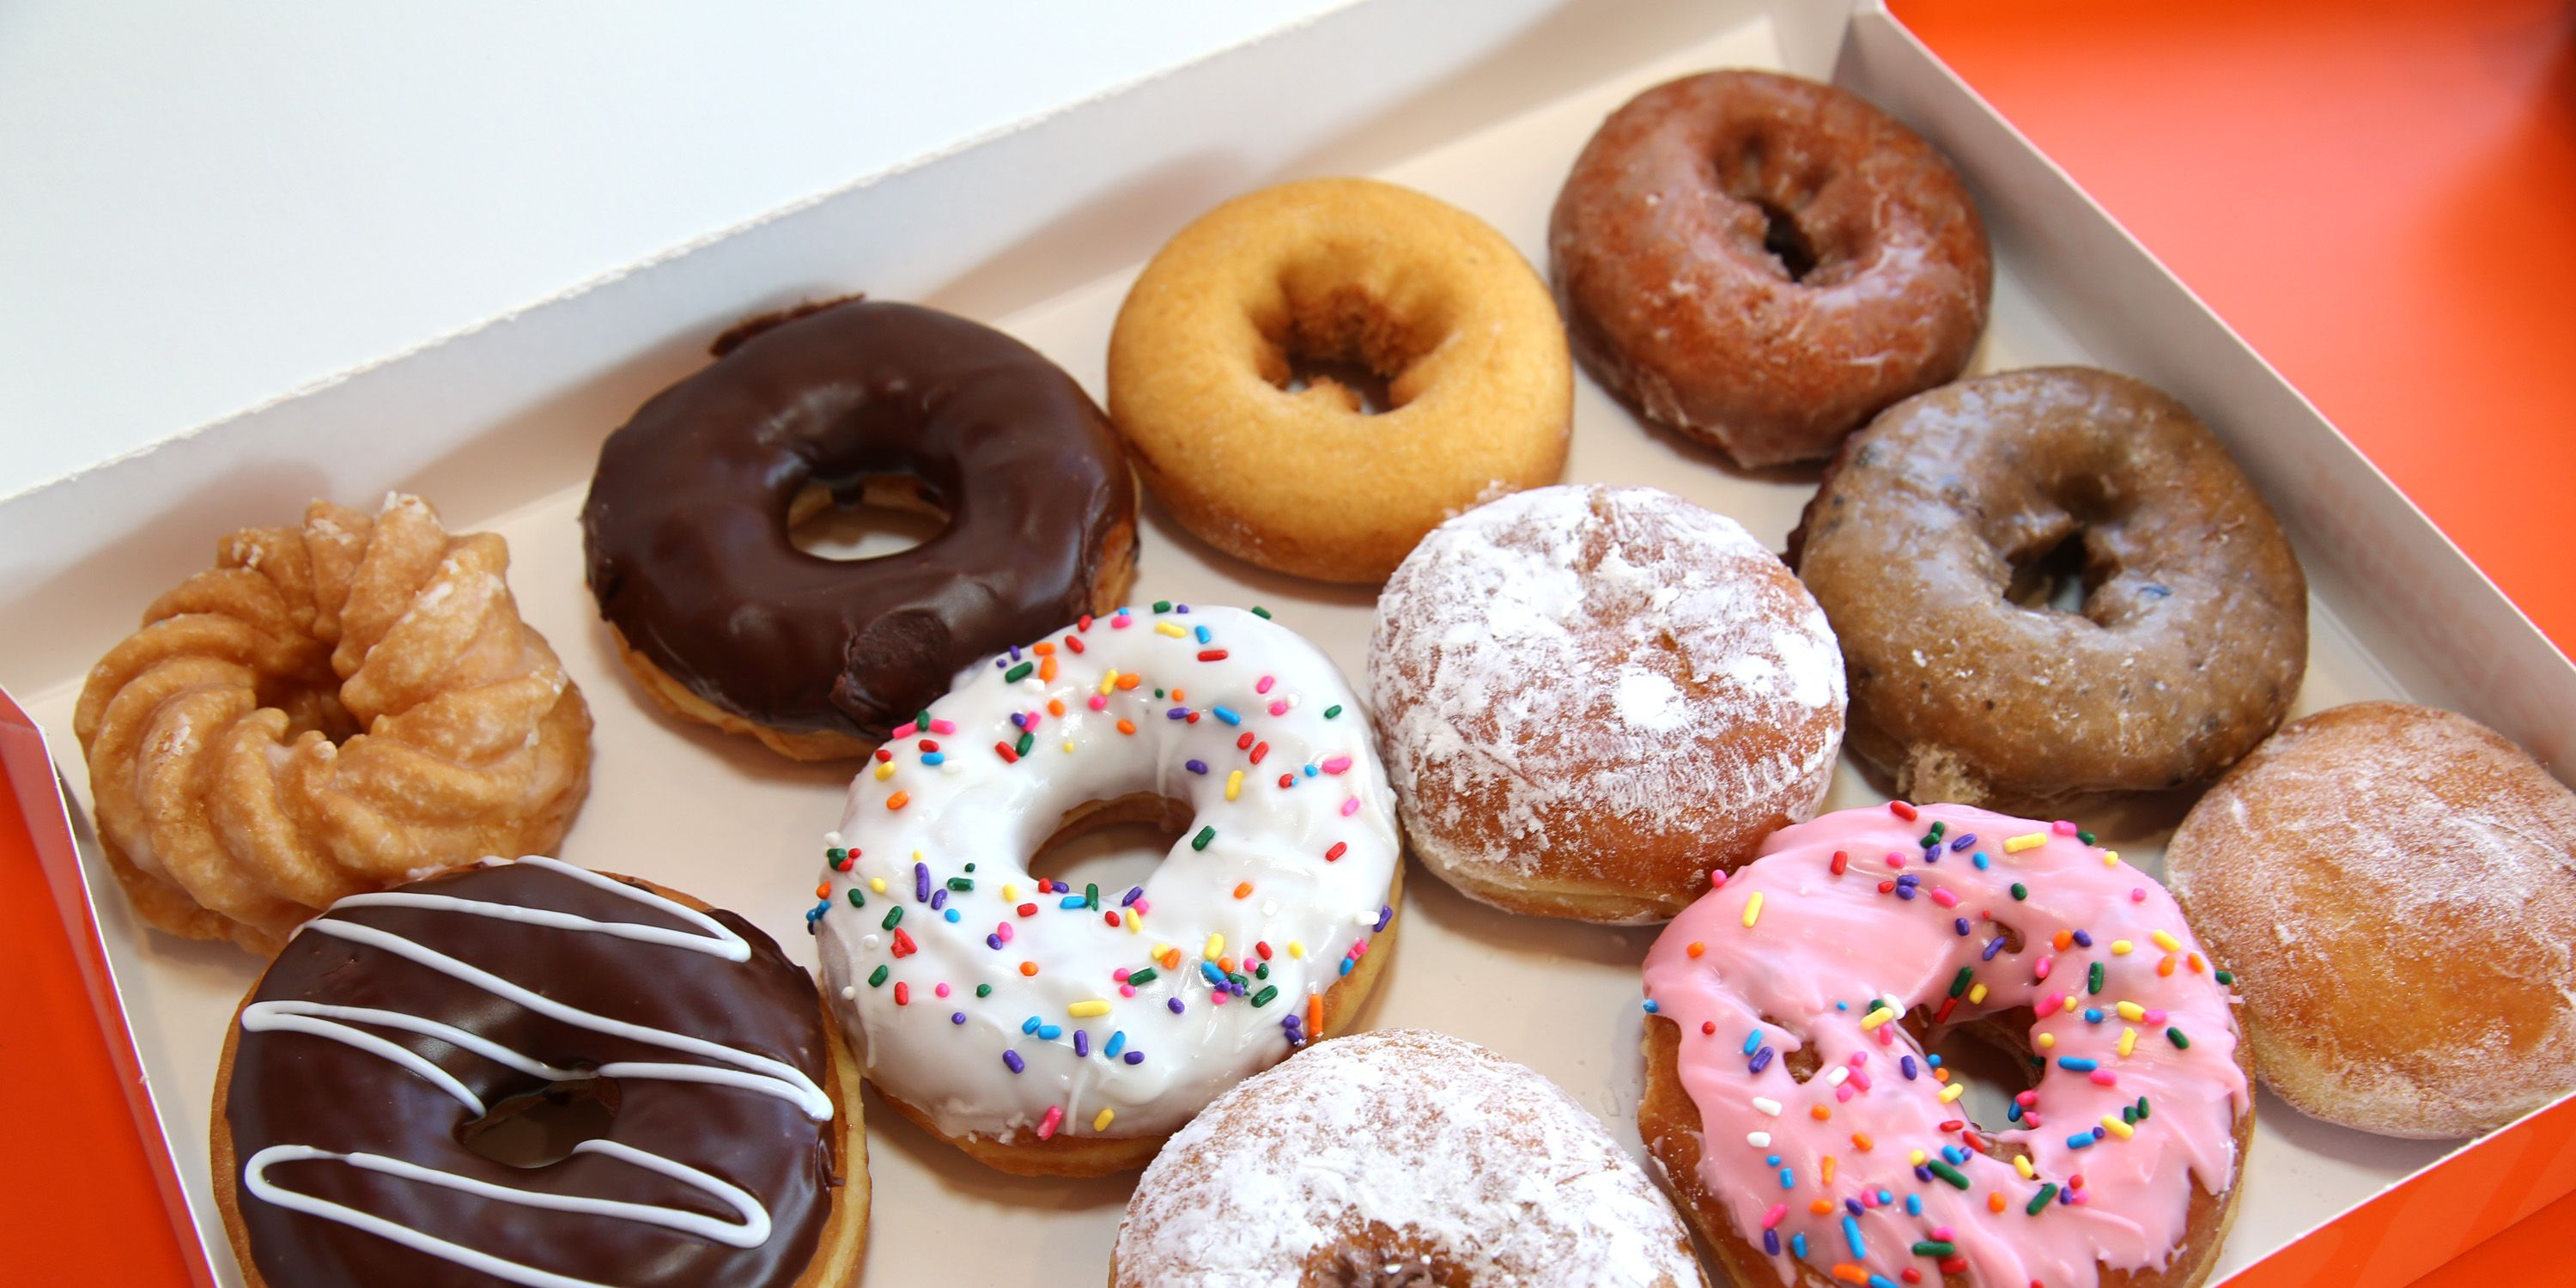 Dunkin' Extended Free Donut Fridays Through The End Of April